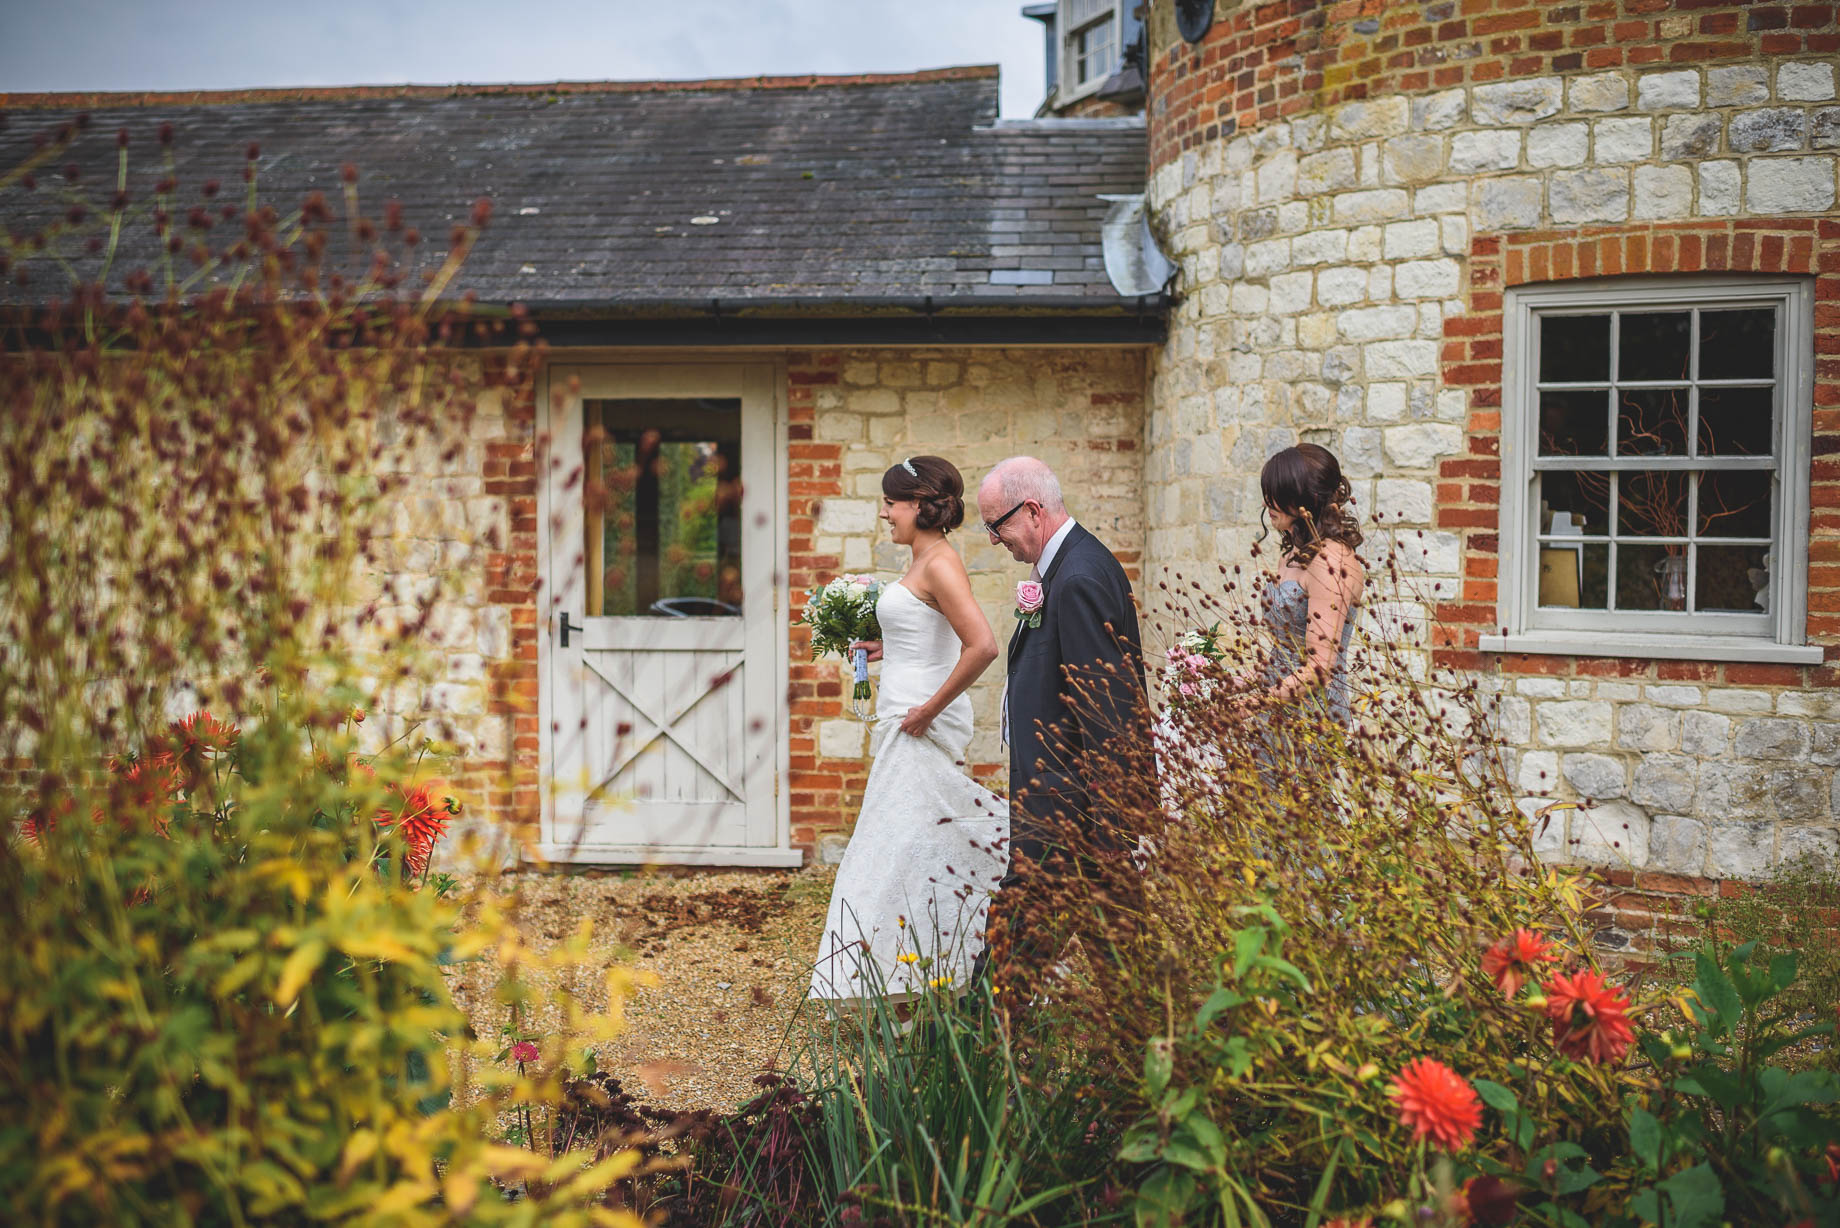 Bury Court Barn wedding photography - Guy Collier Photography - Karen and John (46 of 166)